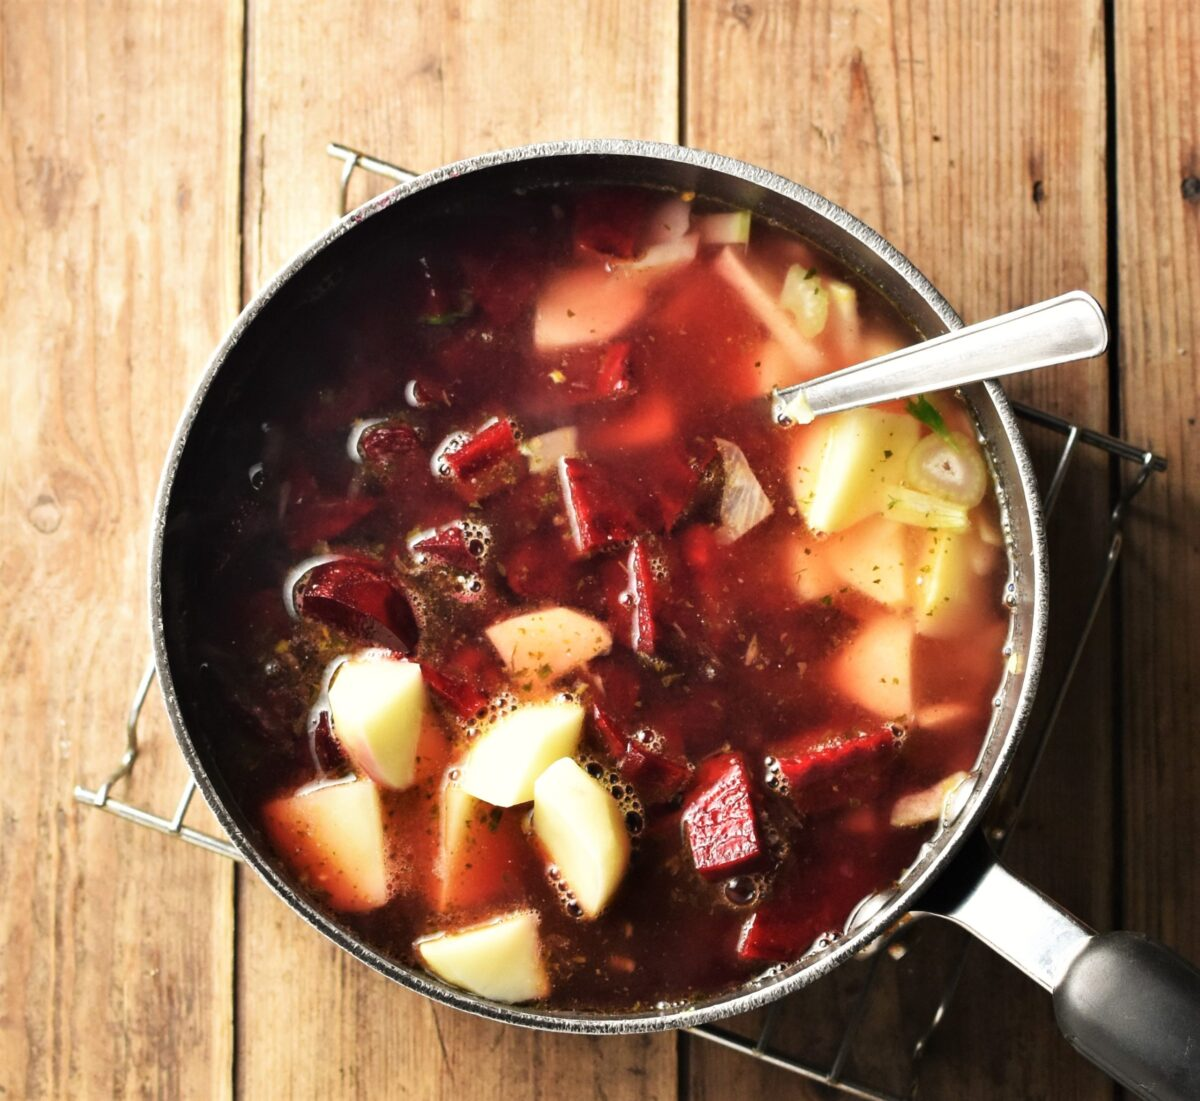 Chopped beetroot, potatoes and stock in large pot with spoon.